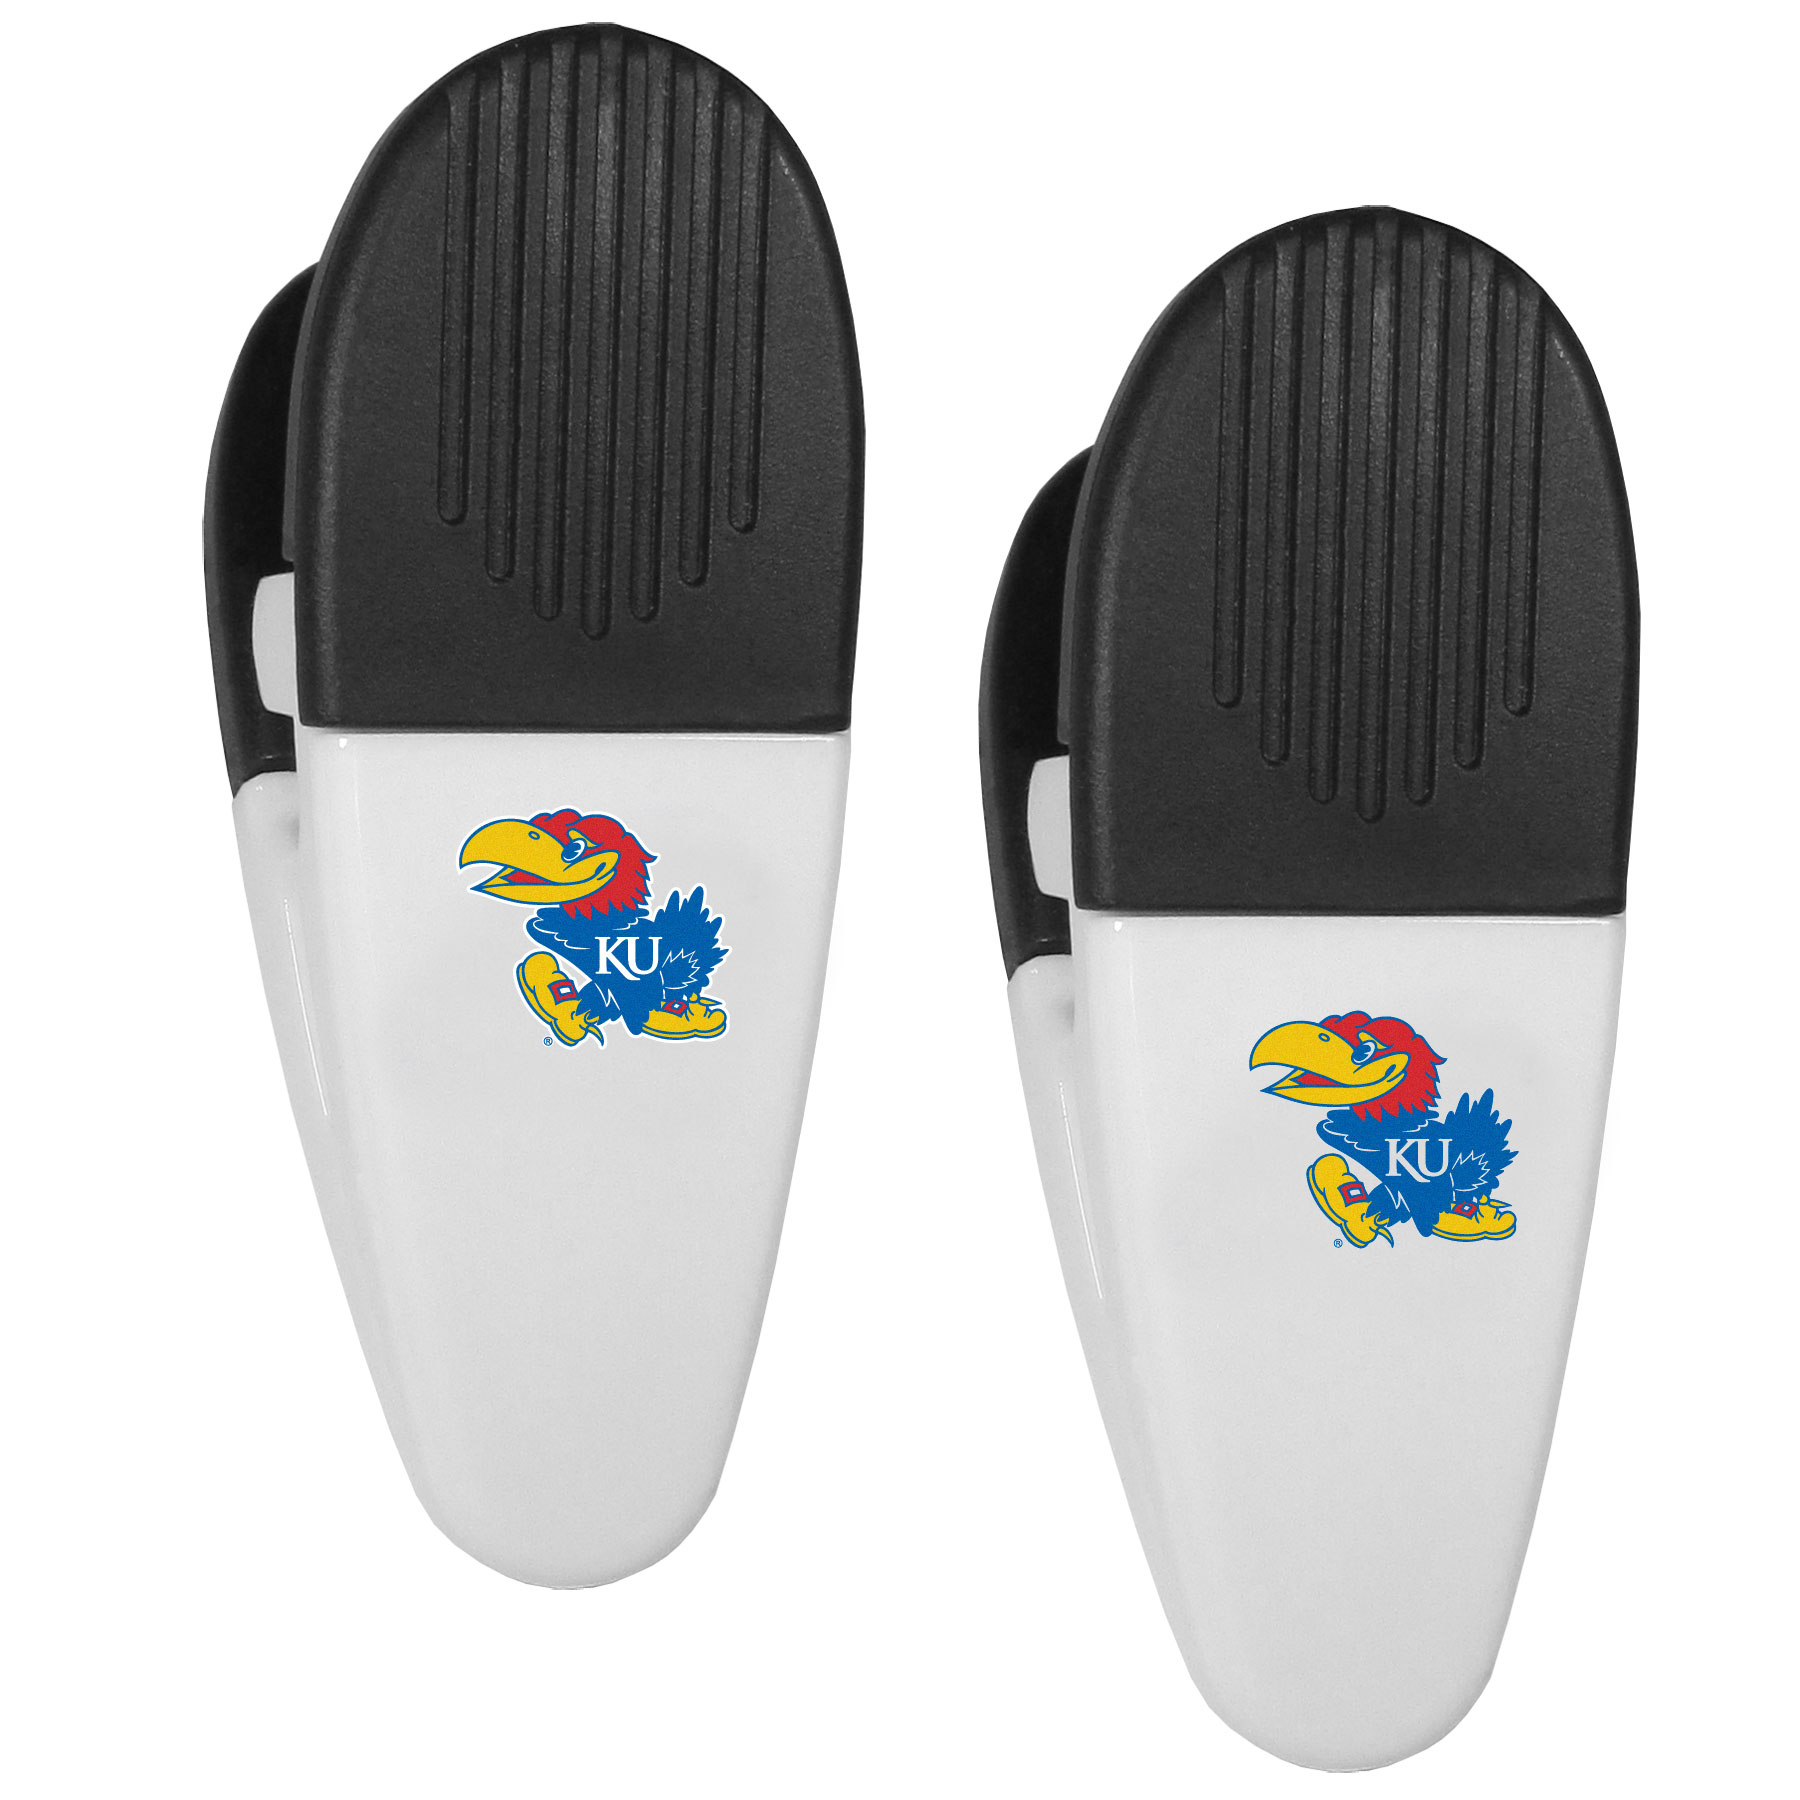 Kansas Jayhawks Mini Chip Clip Magnets, 2 pk - Our Kansas Jayhawks chip clip magnets feature a crisp team logo on the front of the clip. The clip is perfect for sealing chips for freshness and with the powerful magnet on the back it can be used to attach notes to the fridge or hanging your child's artwork. Set of 2 magnet clips, each clip is 3.5 inches tall and 1.25 inch wide.